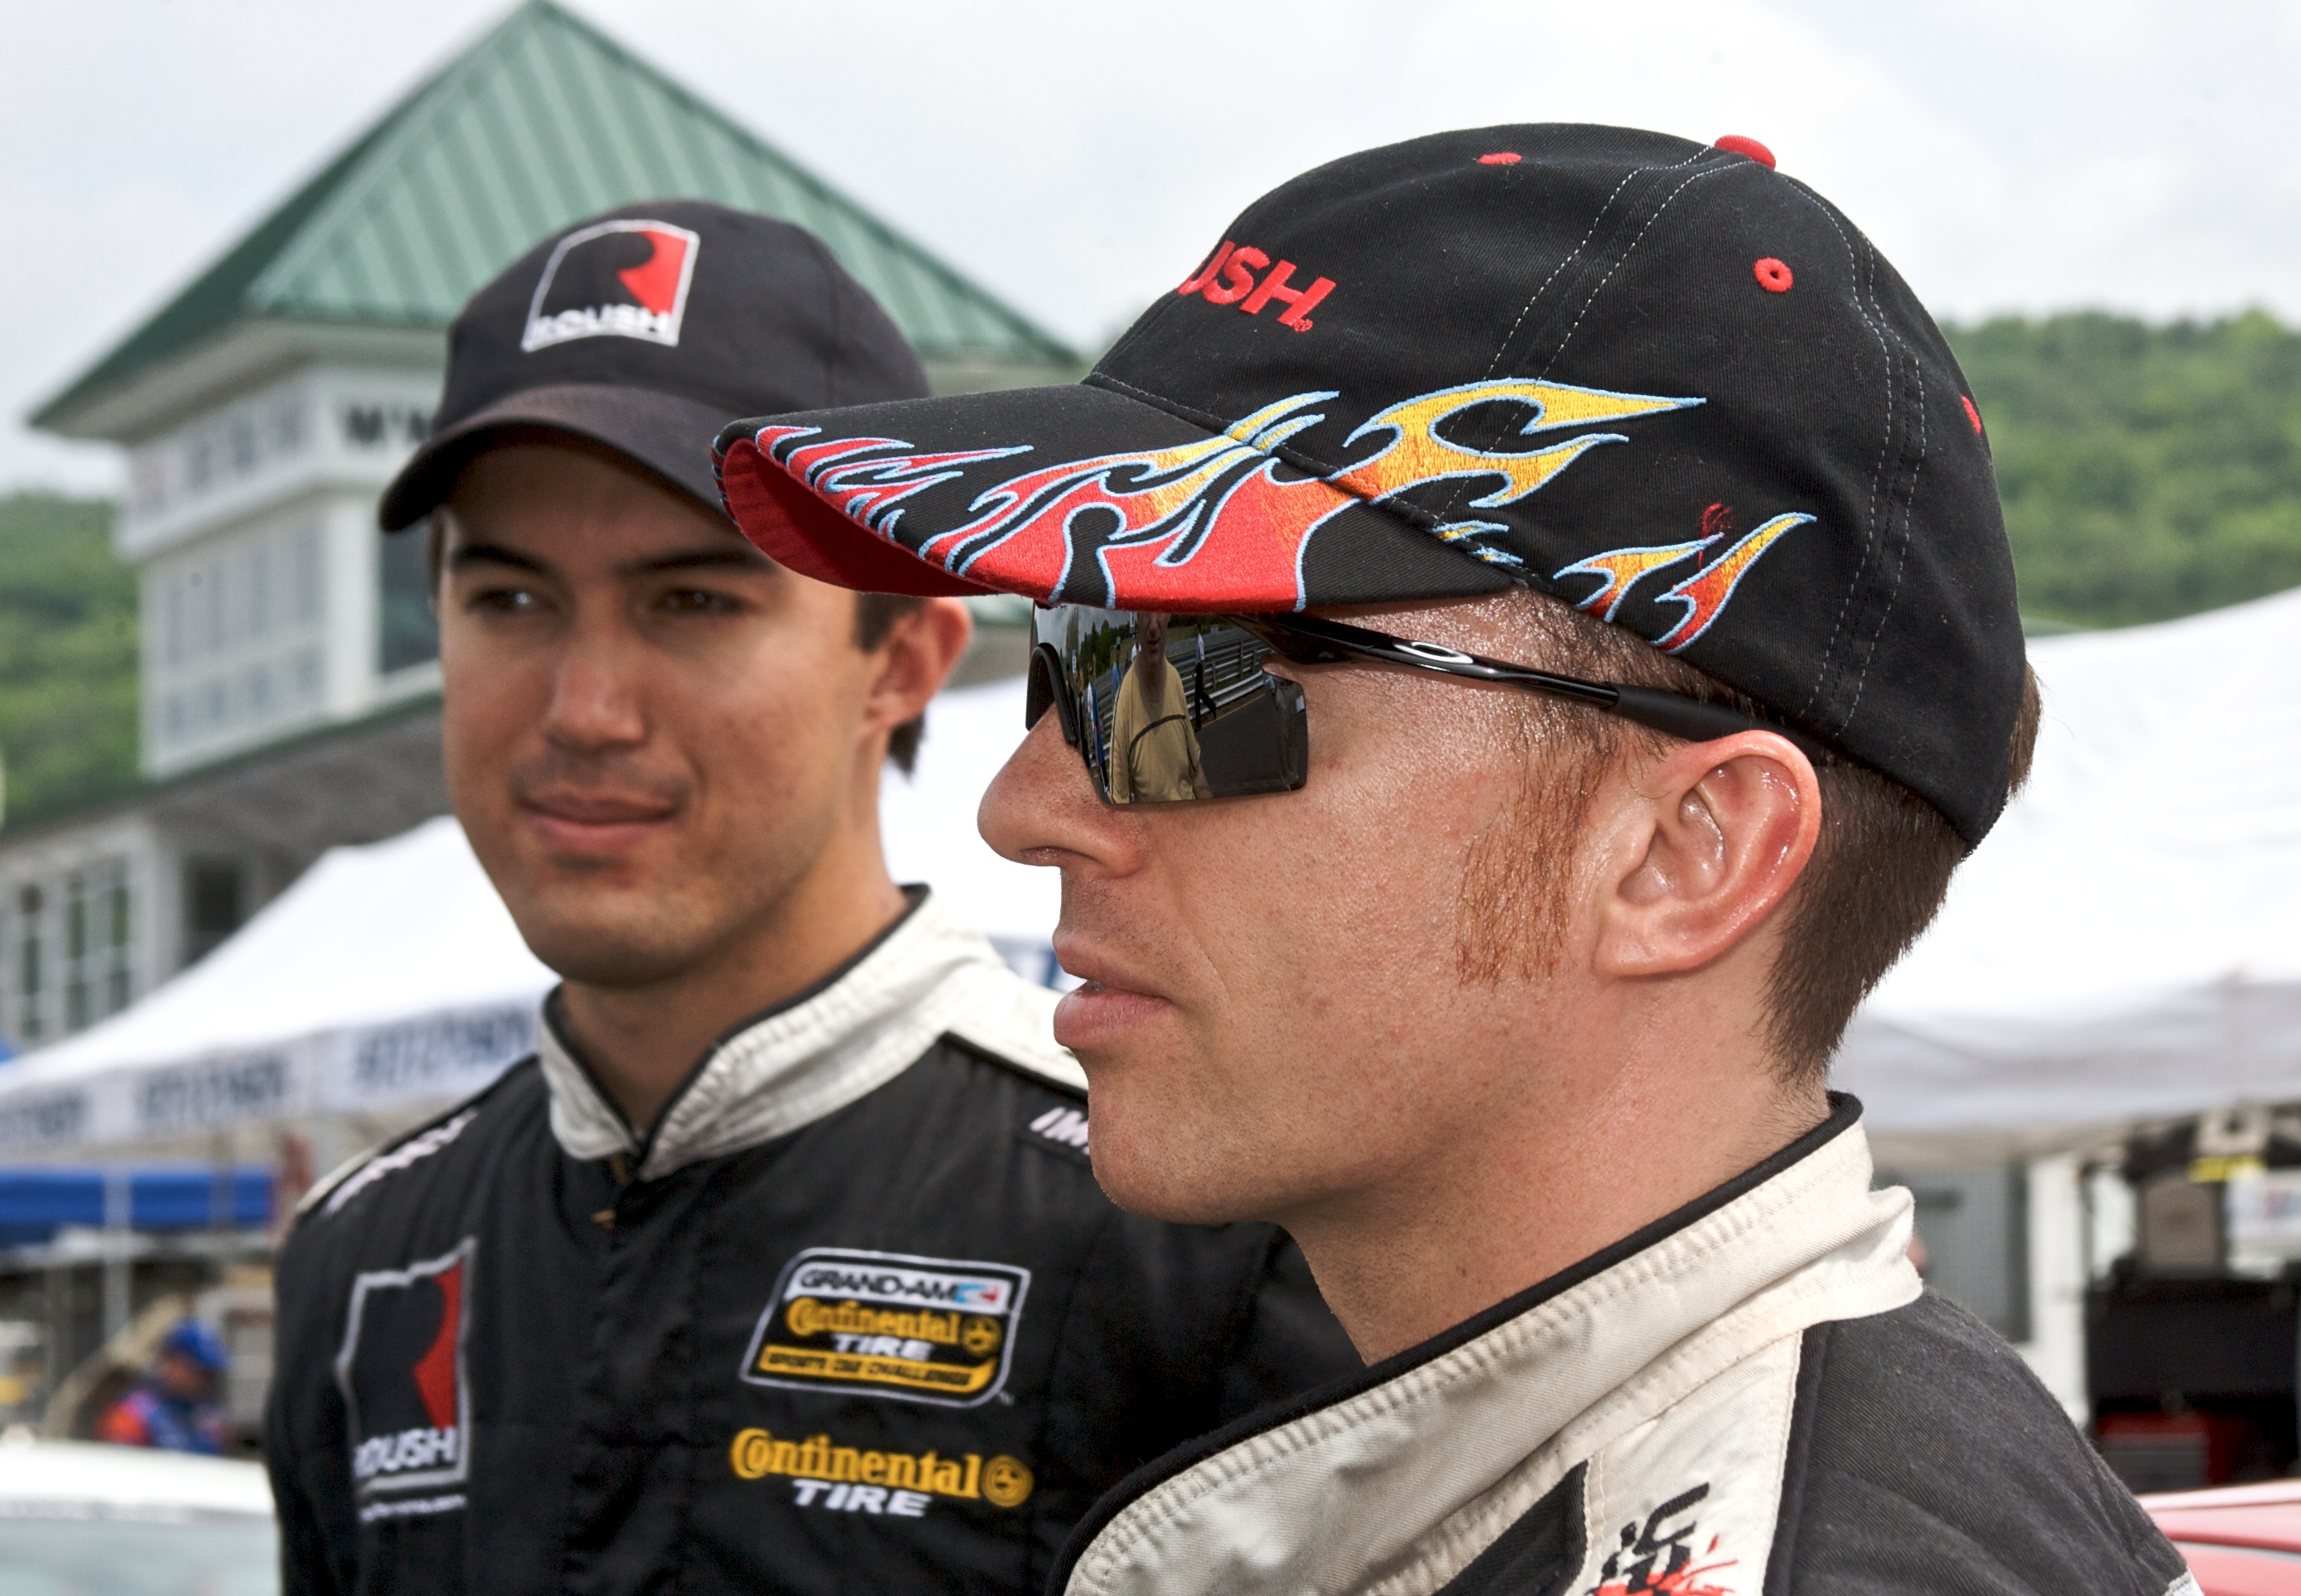 Roush Jr. Has Record Season in Continental Tire Sports Car Challenge